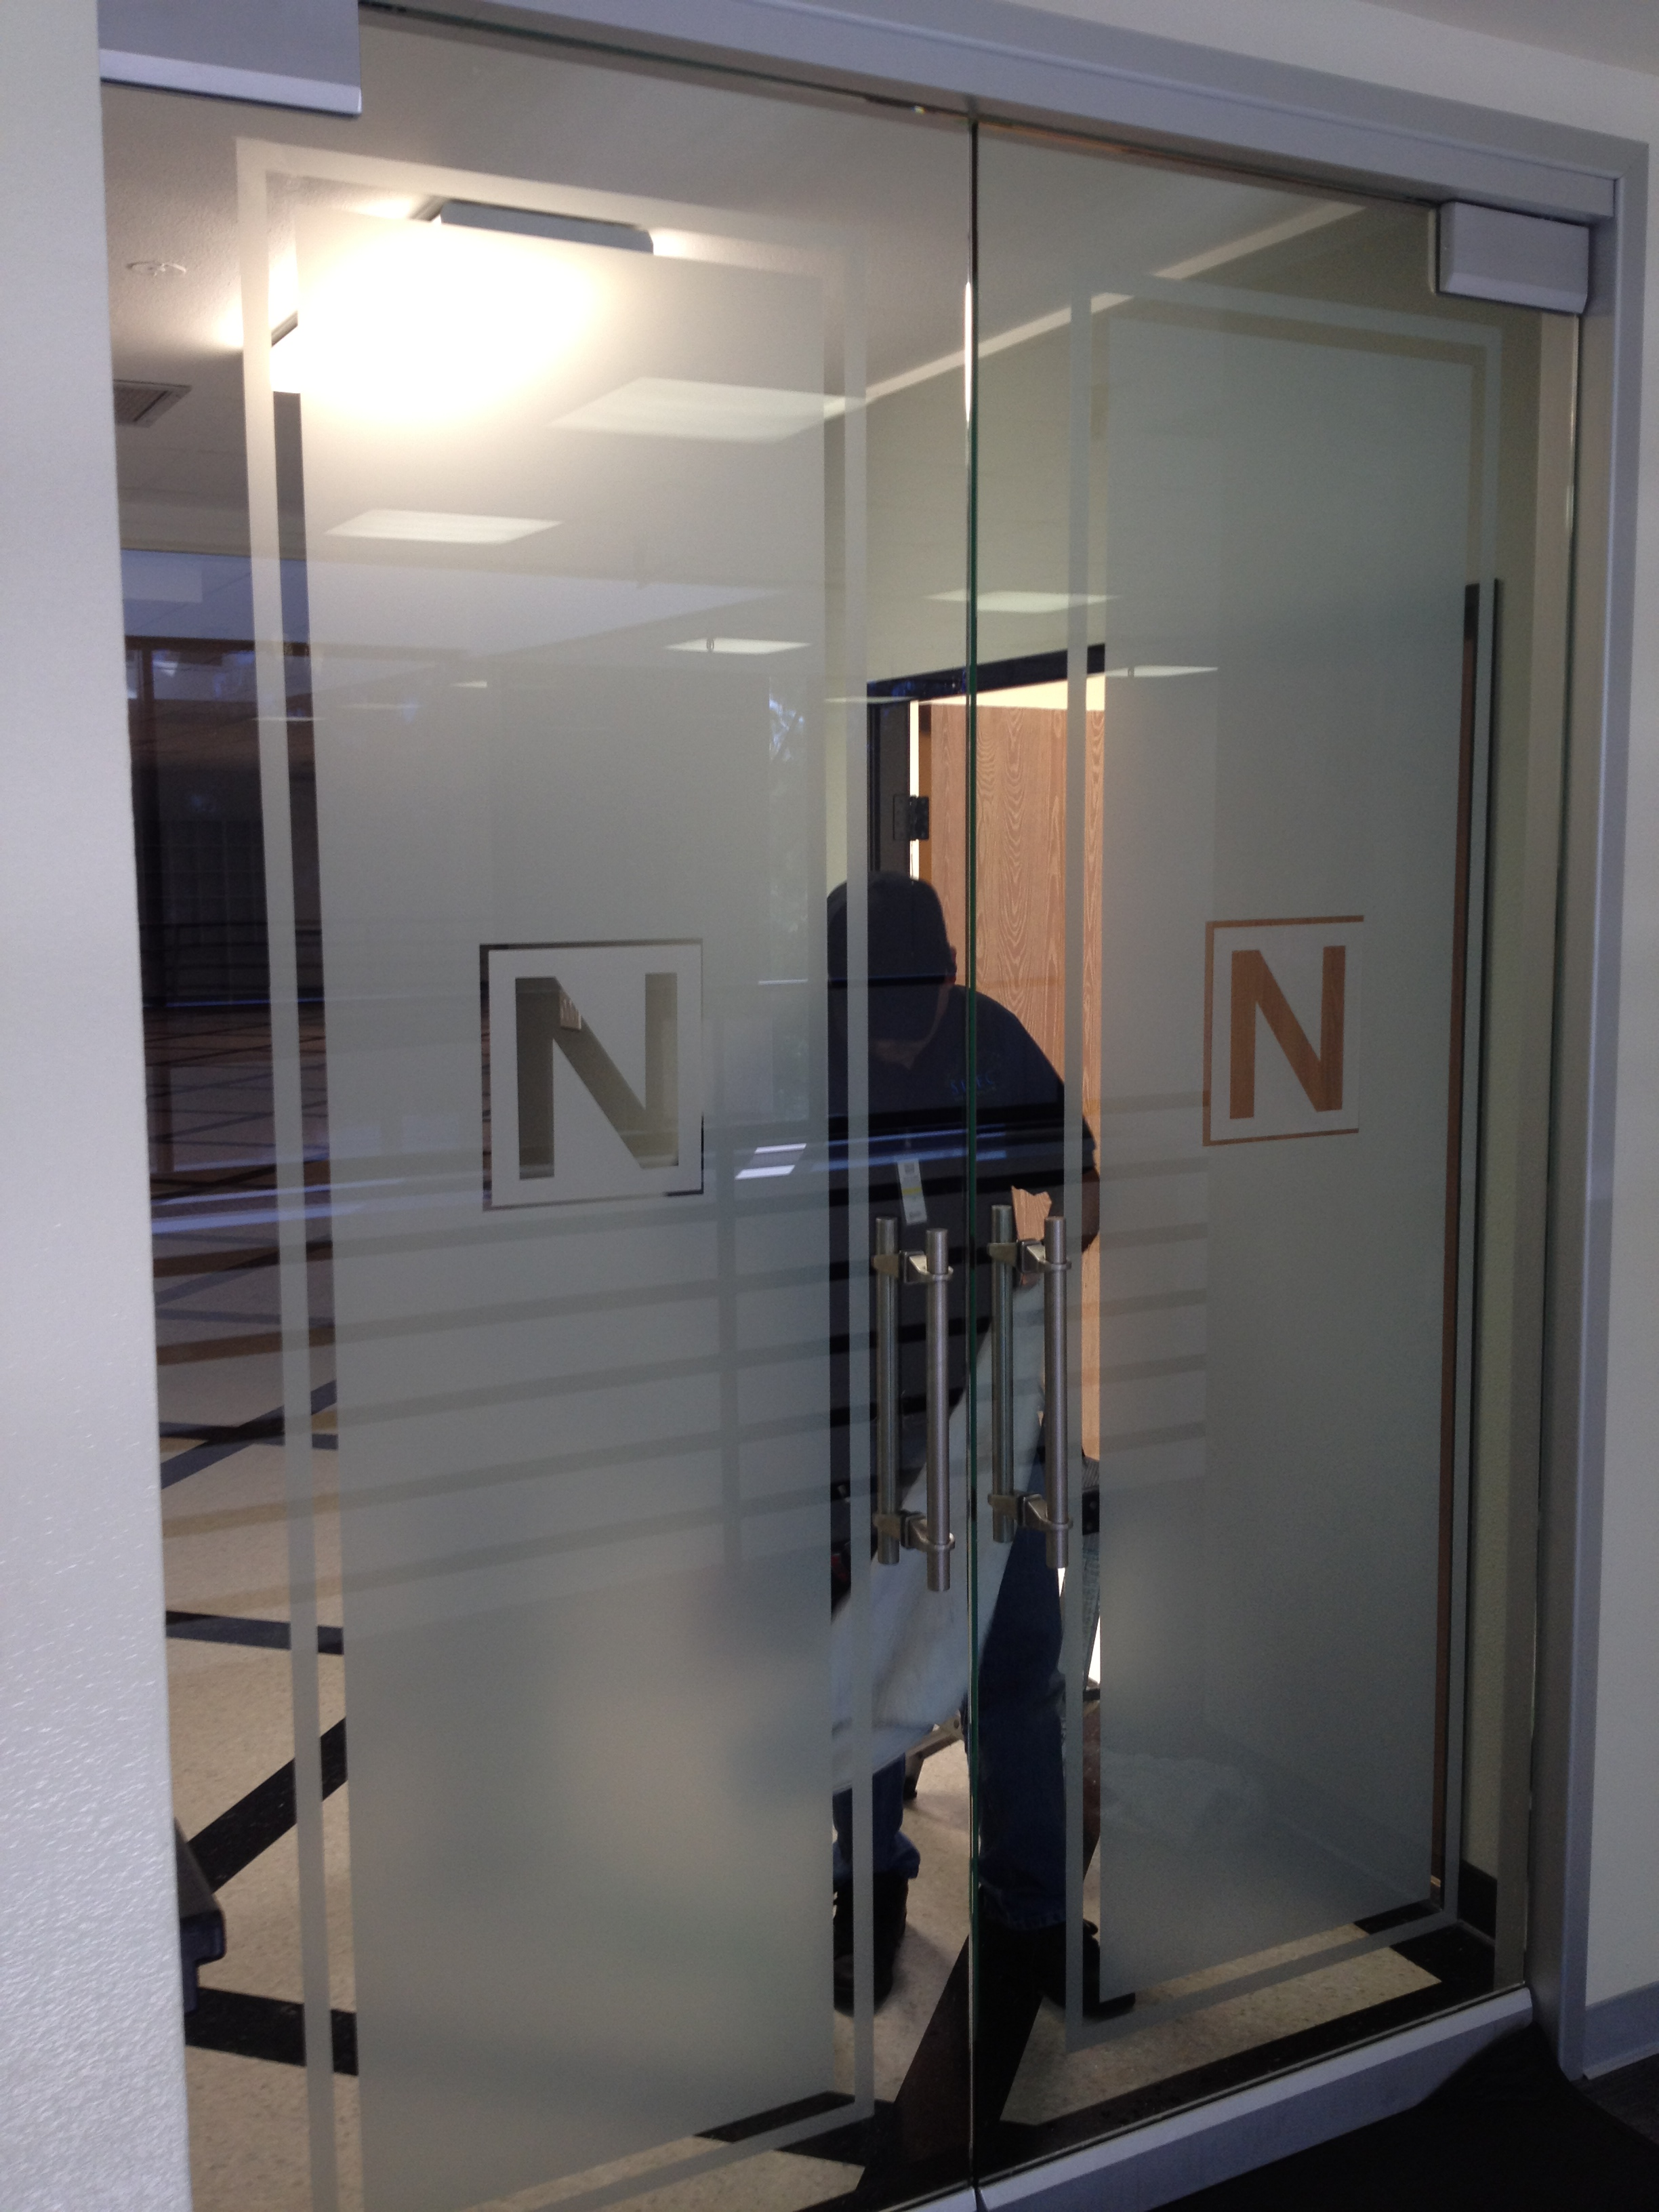 Custom Frost Doors With Logos - Select Window Films, Inc.